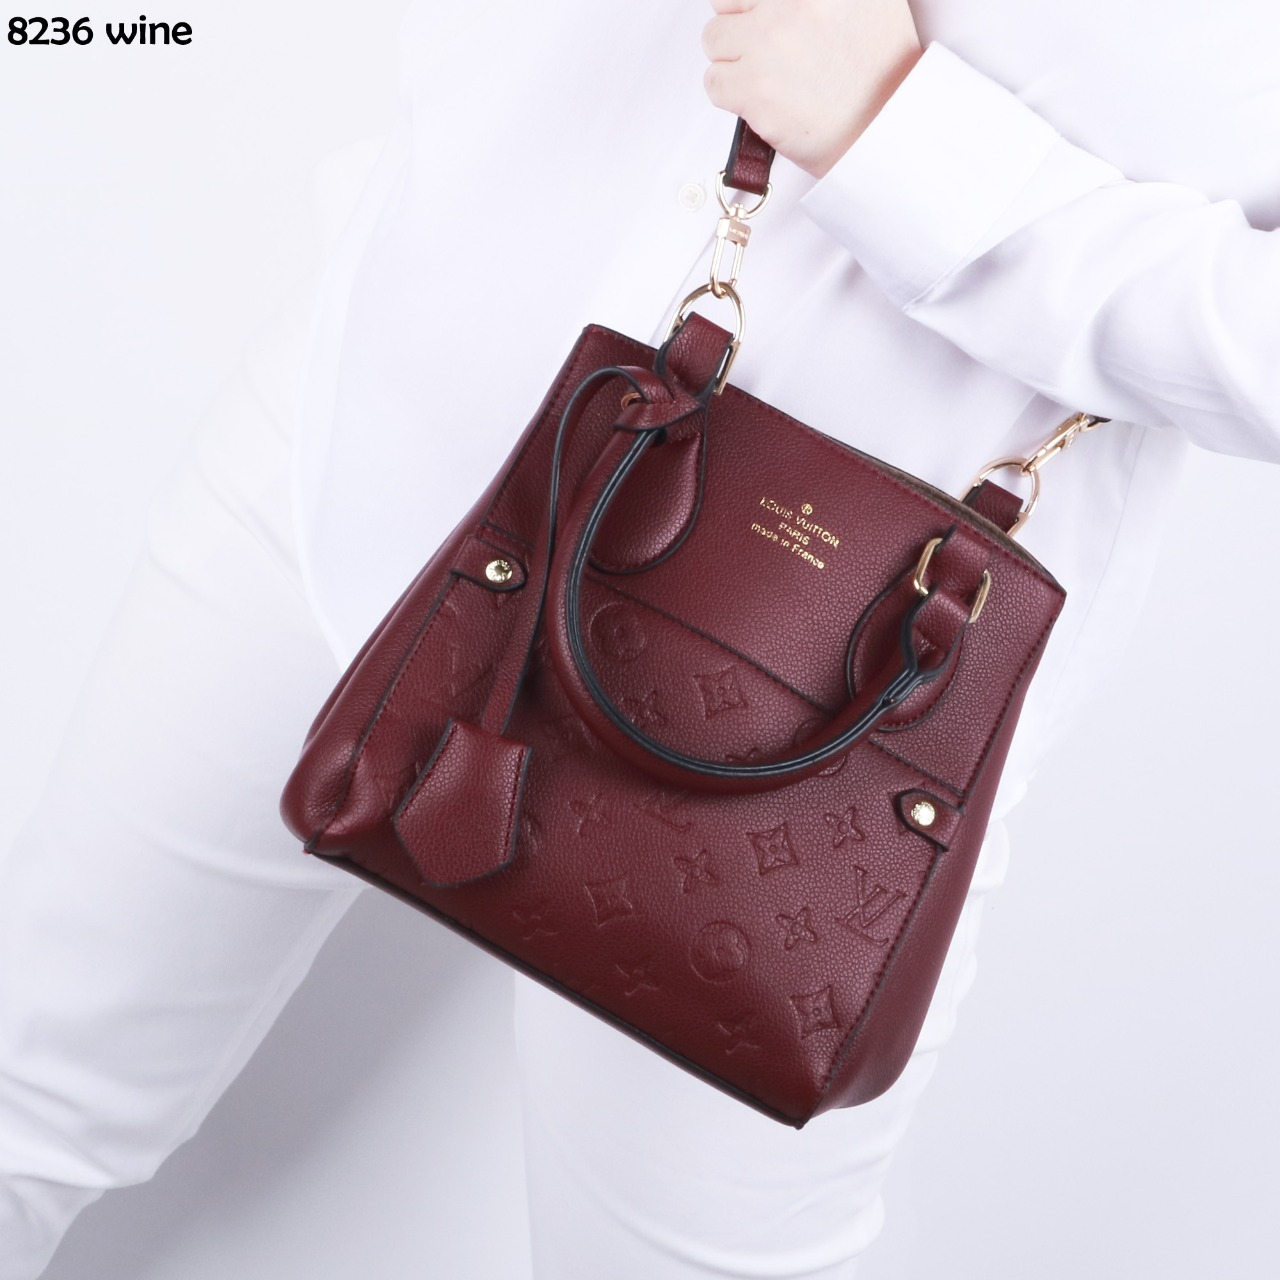 New Collection New Arrival Readystock LV Fold Tote: MD8236